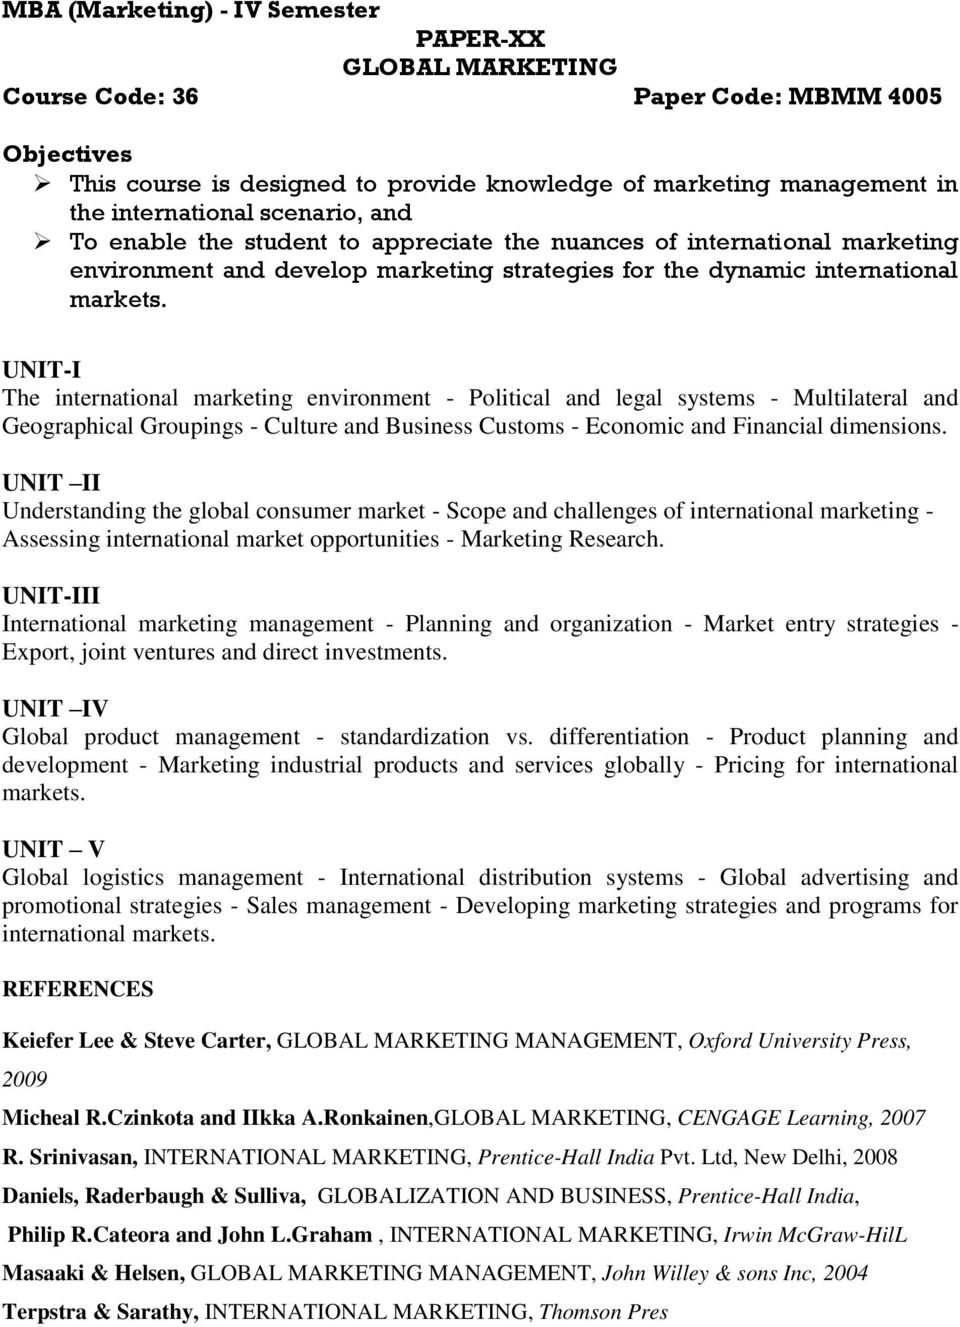 UNIT-I The international marketing environment - Political and legal systems - Multilateral and Geographical Groupings - Culture and Business Customs - Economic and Financial dimensions.